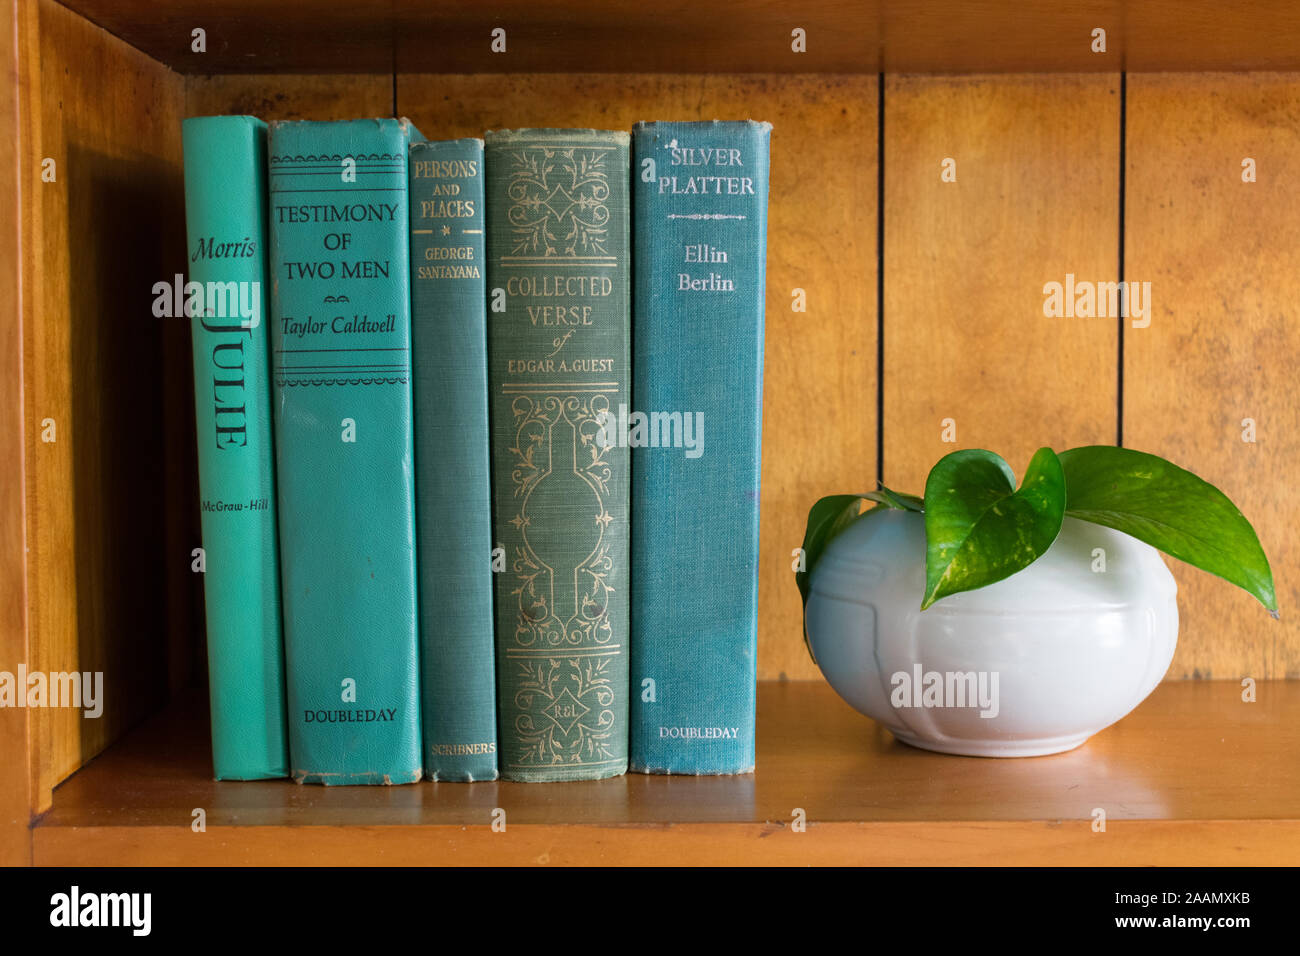 Vintage Blue And Green Books On Vintage Bookshelf With